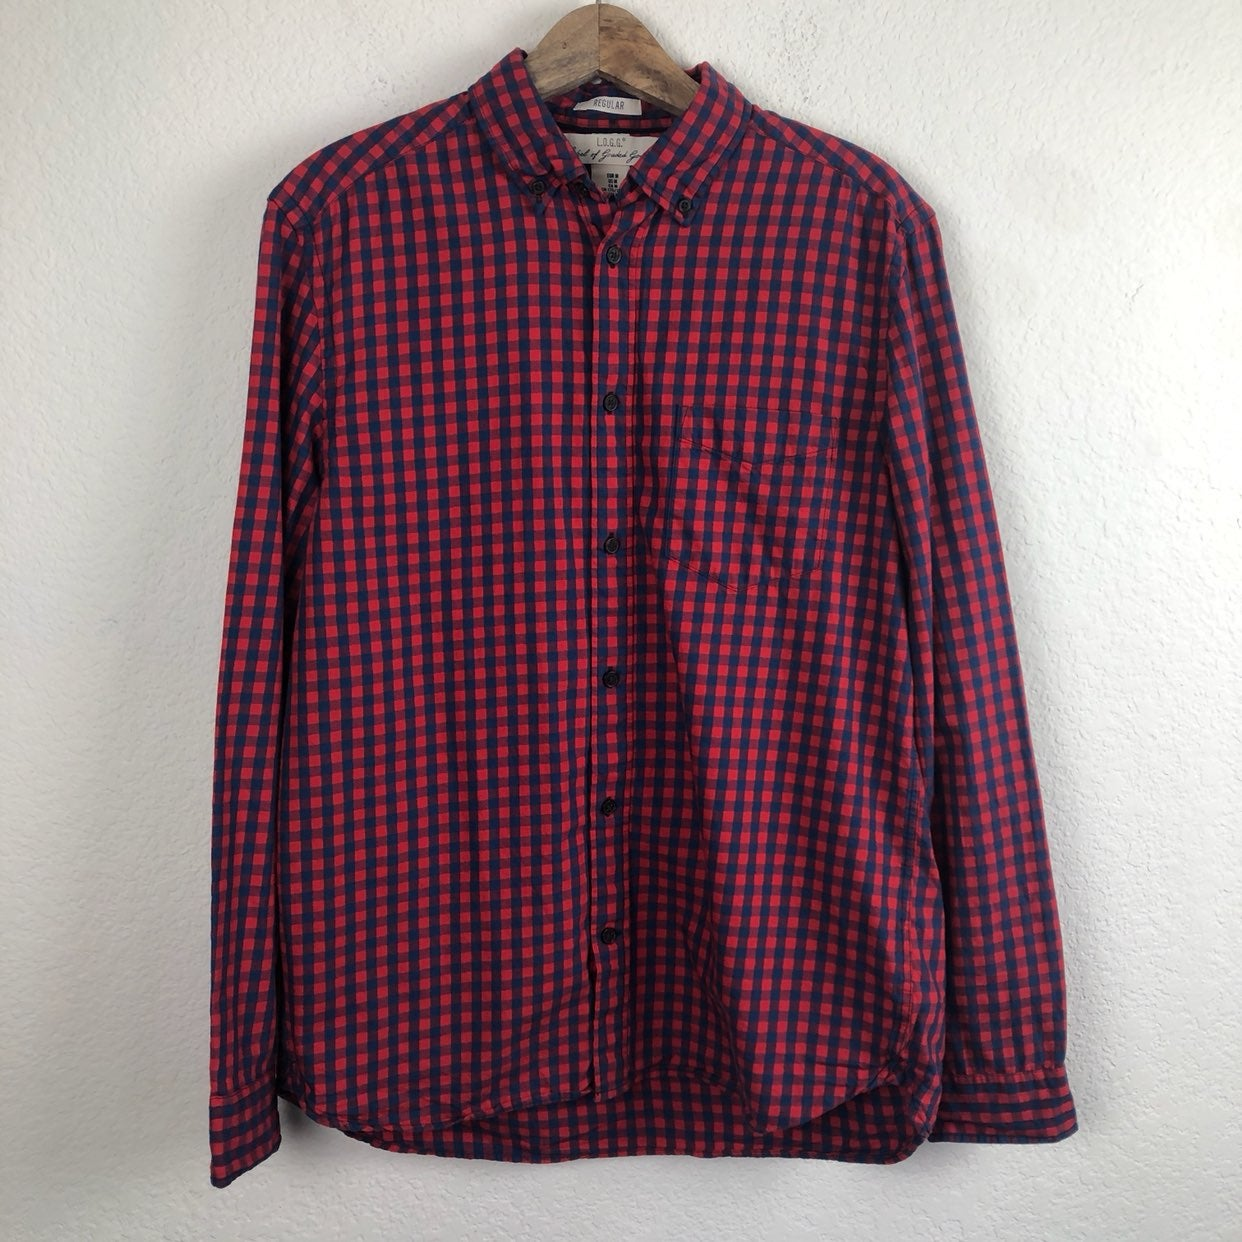 H&M L.O.G.G Blue Red Checkered Shirt M